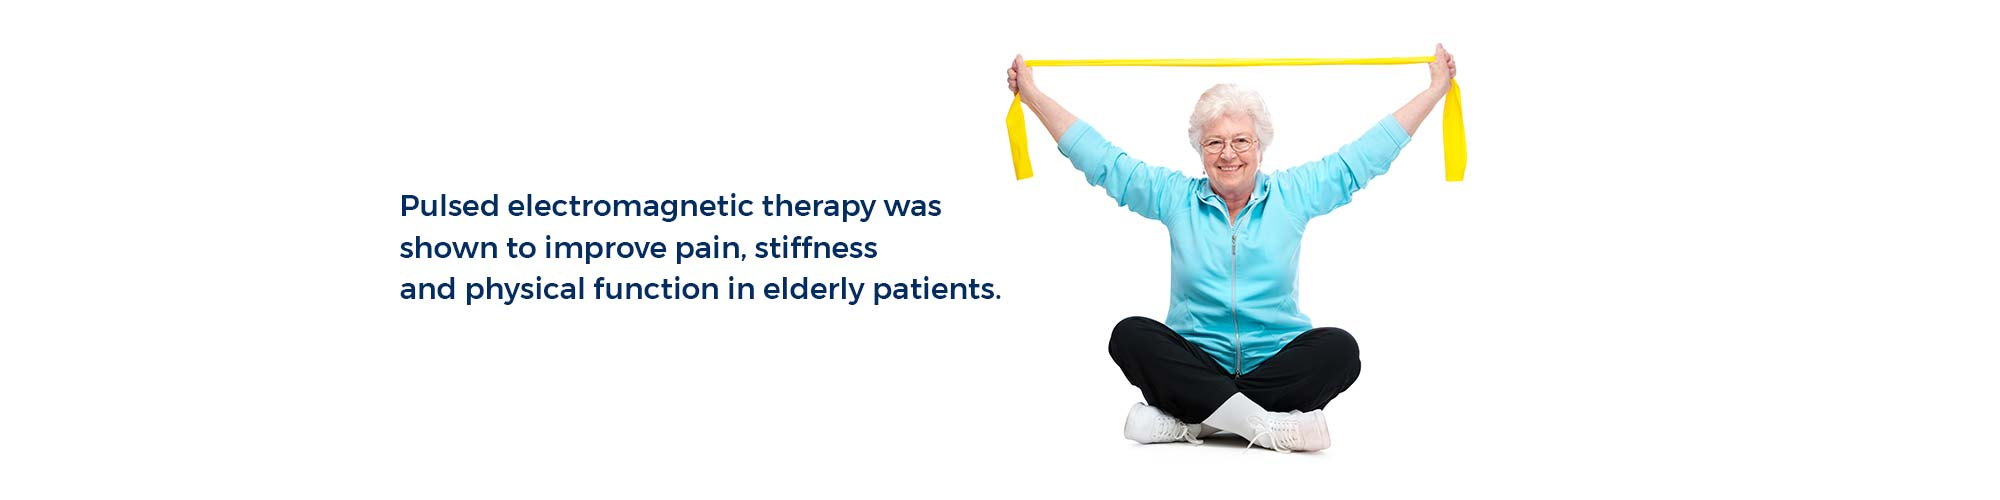 Pulsed electromagnetic therapy was shown to improve pain, stiffness and physical function in elderly patients.